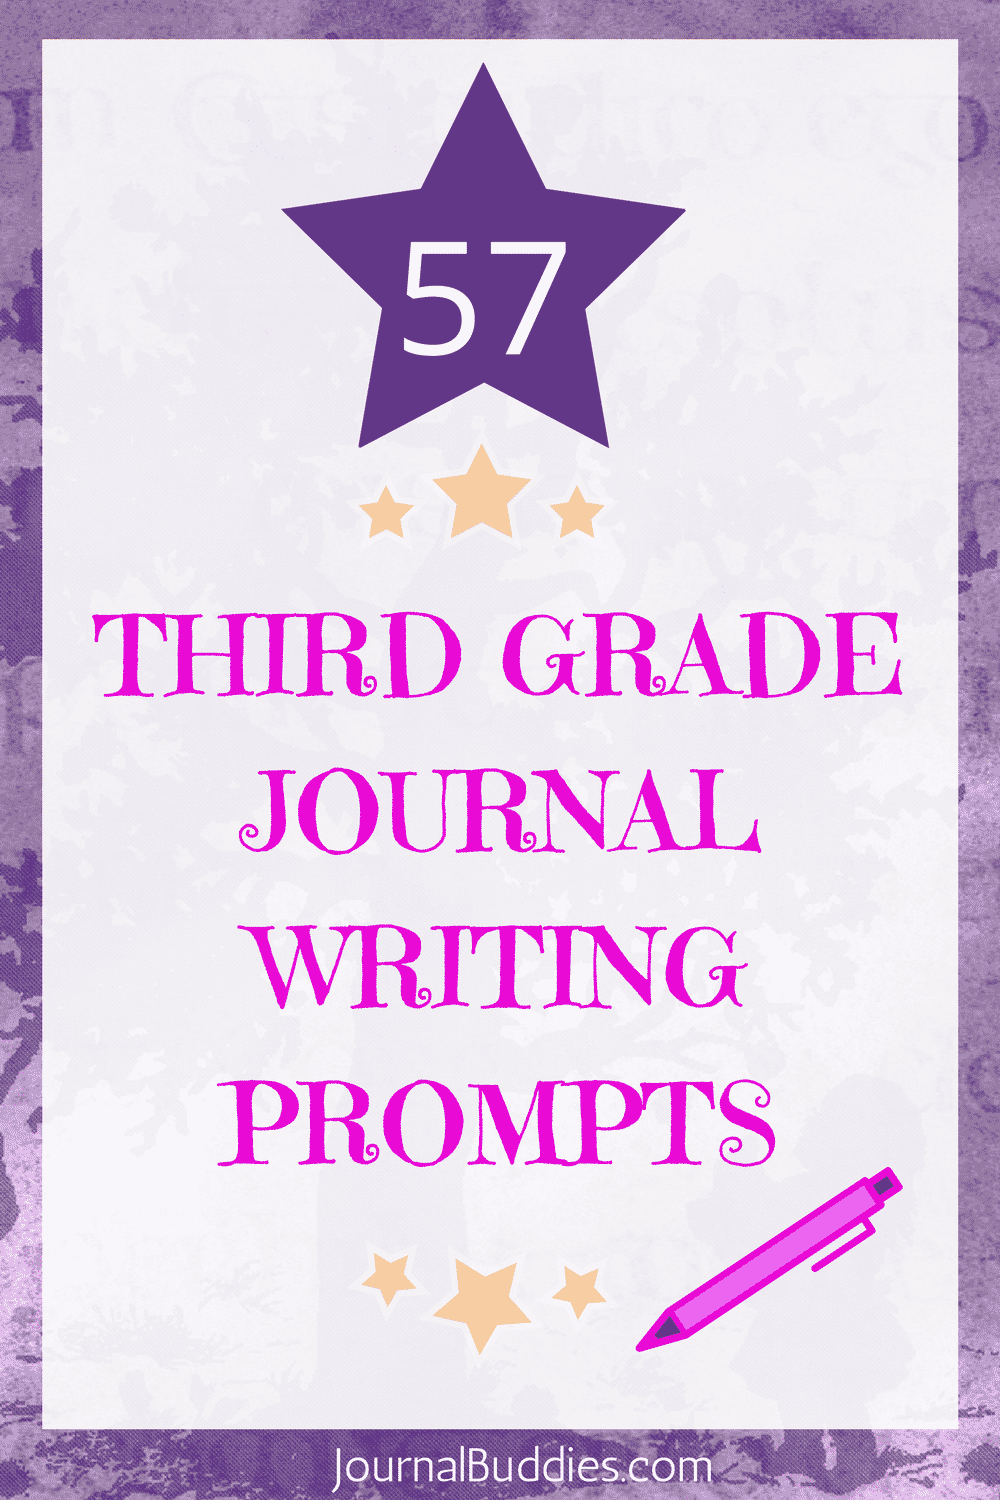 Third Grade Journal Writing Prompts